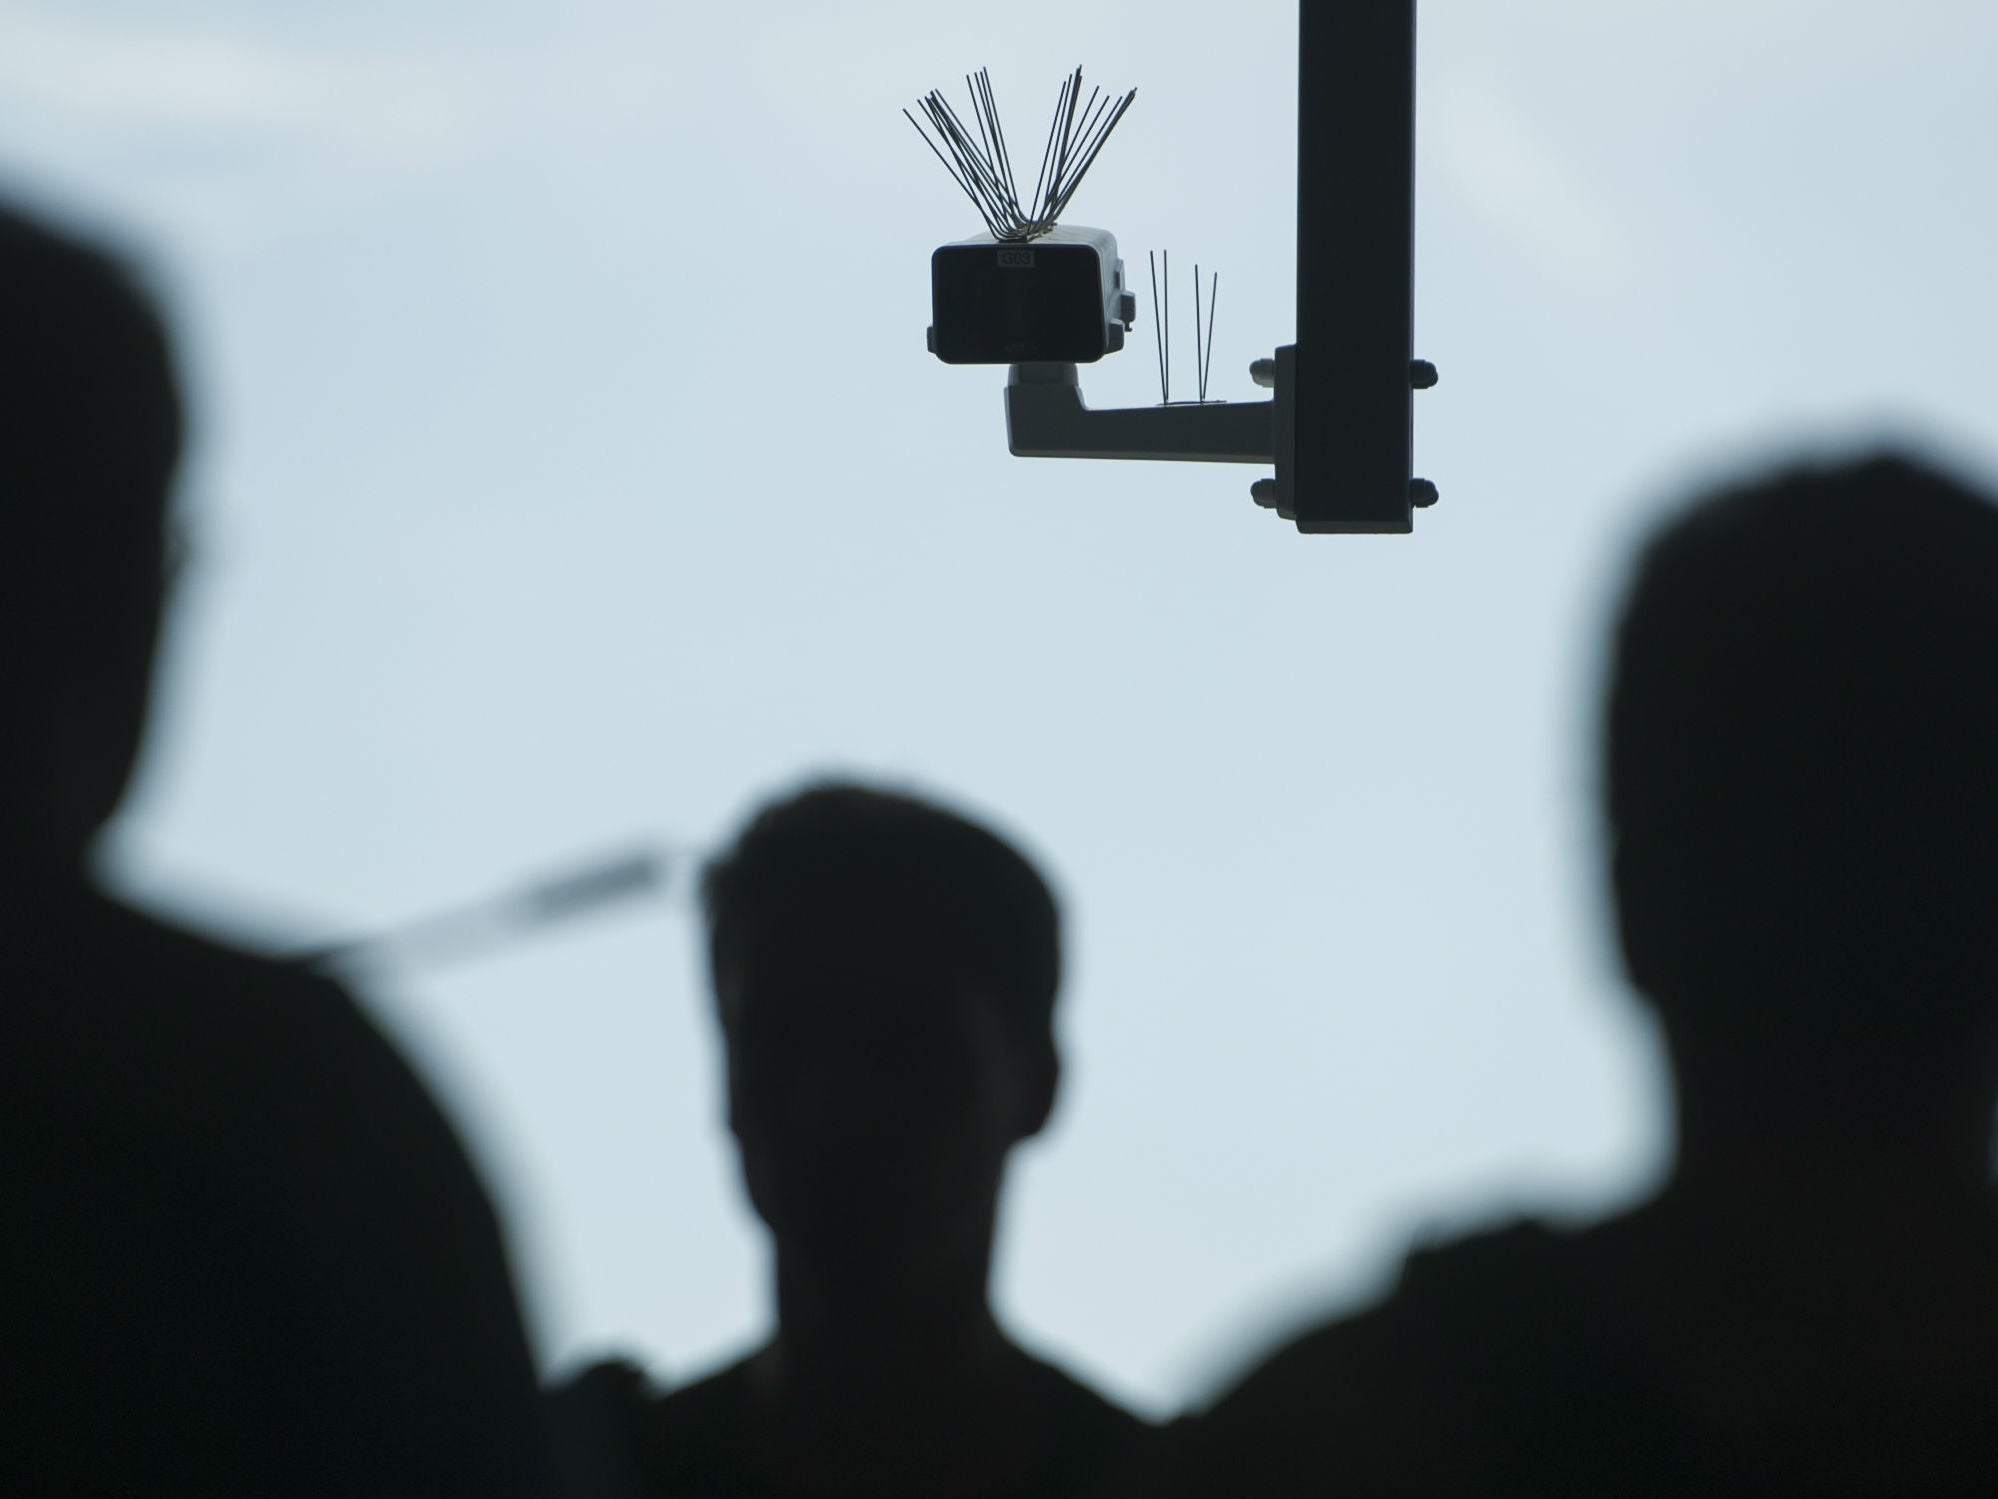 IBM will no longer develop facial recognition technology following George Floyd protests thumbnail